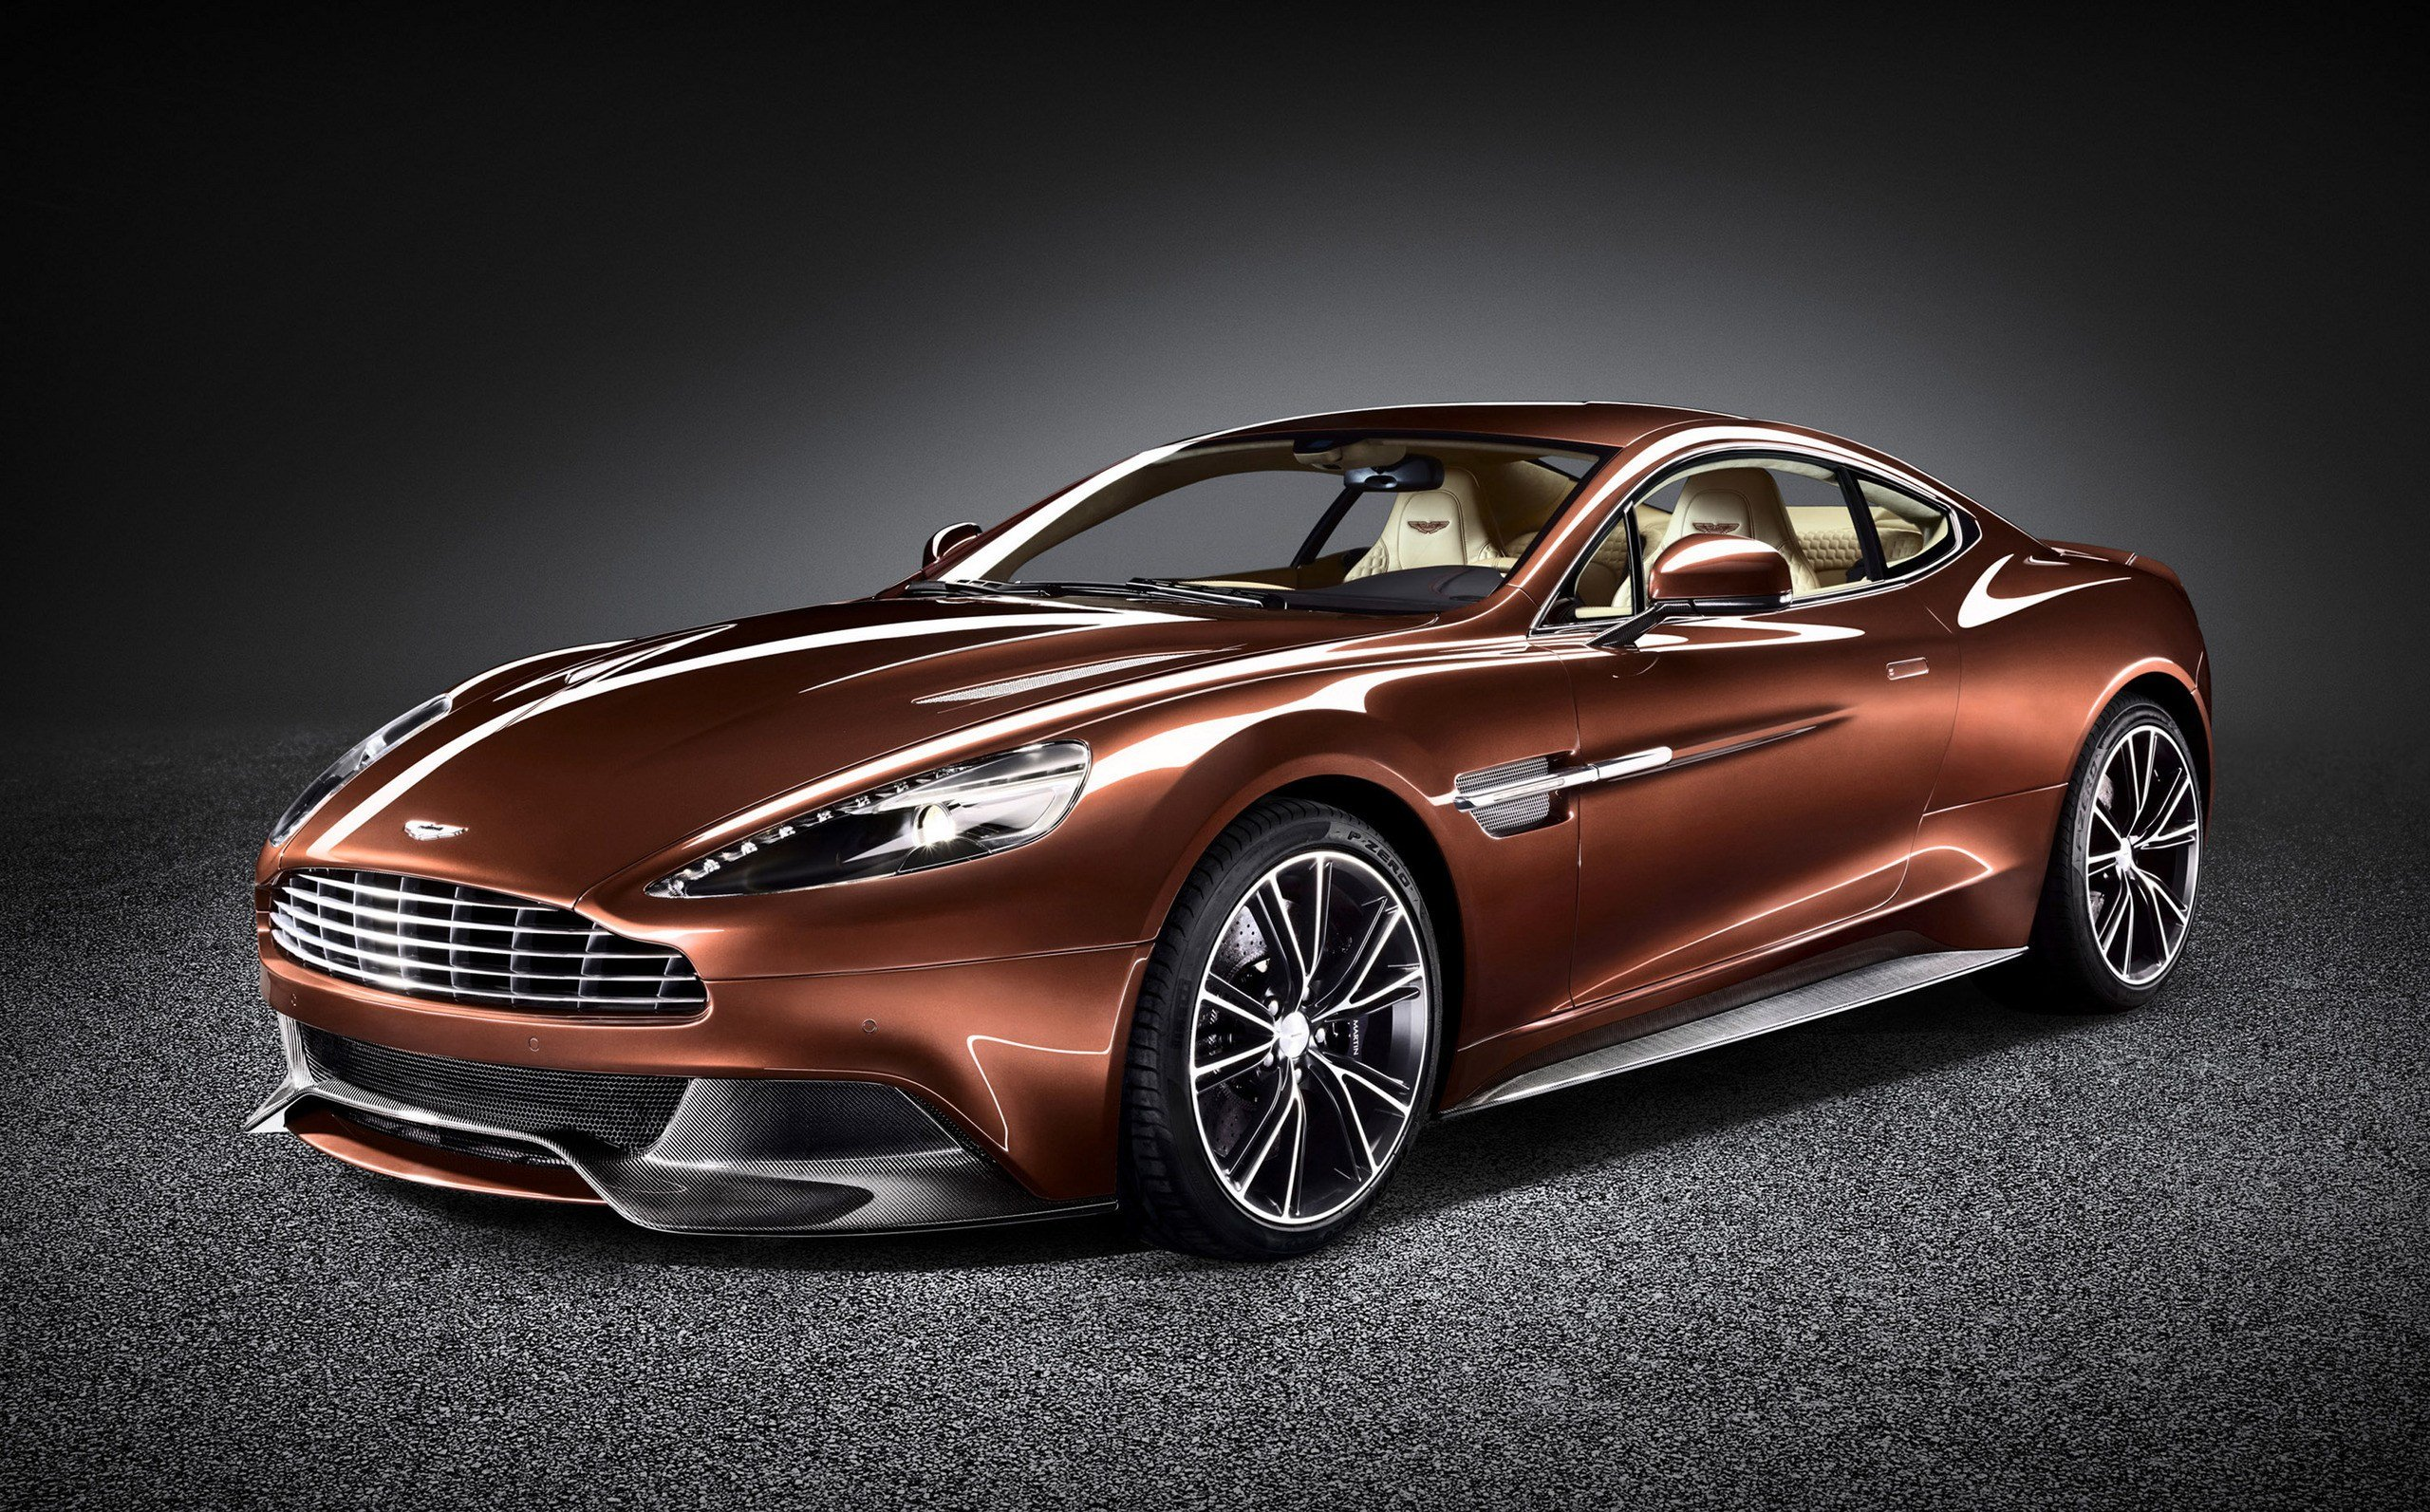 Latest Aston Martin Vanquish Sports Cars Photo 31233272 Fanpop Free Download